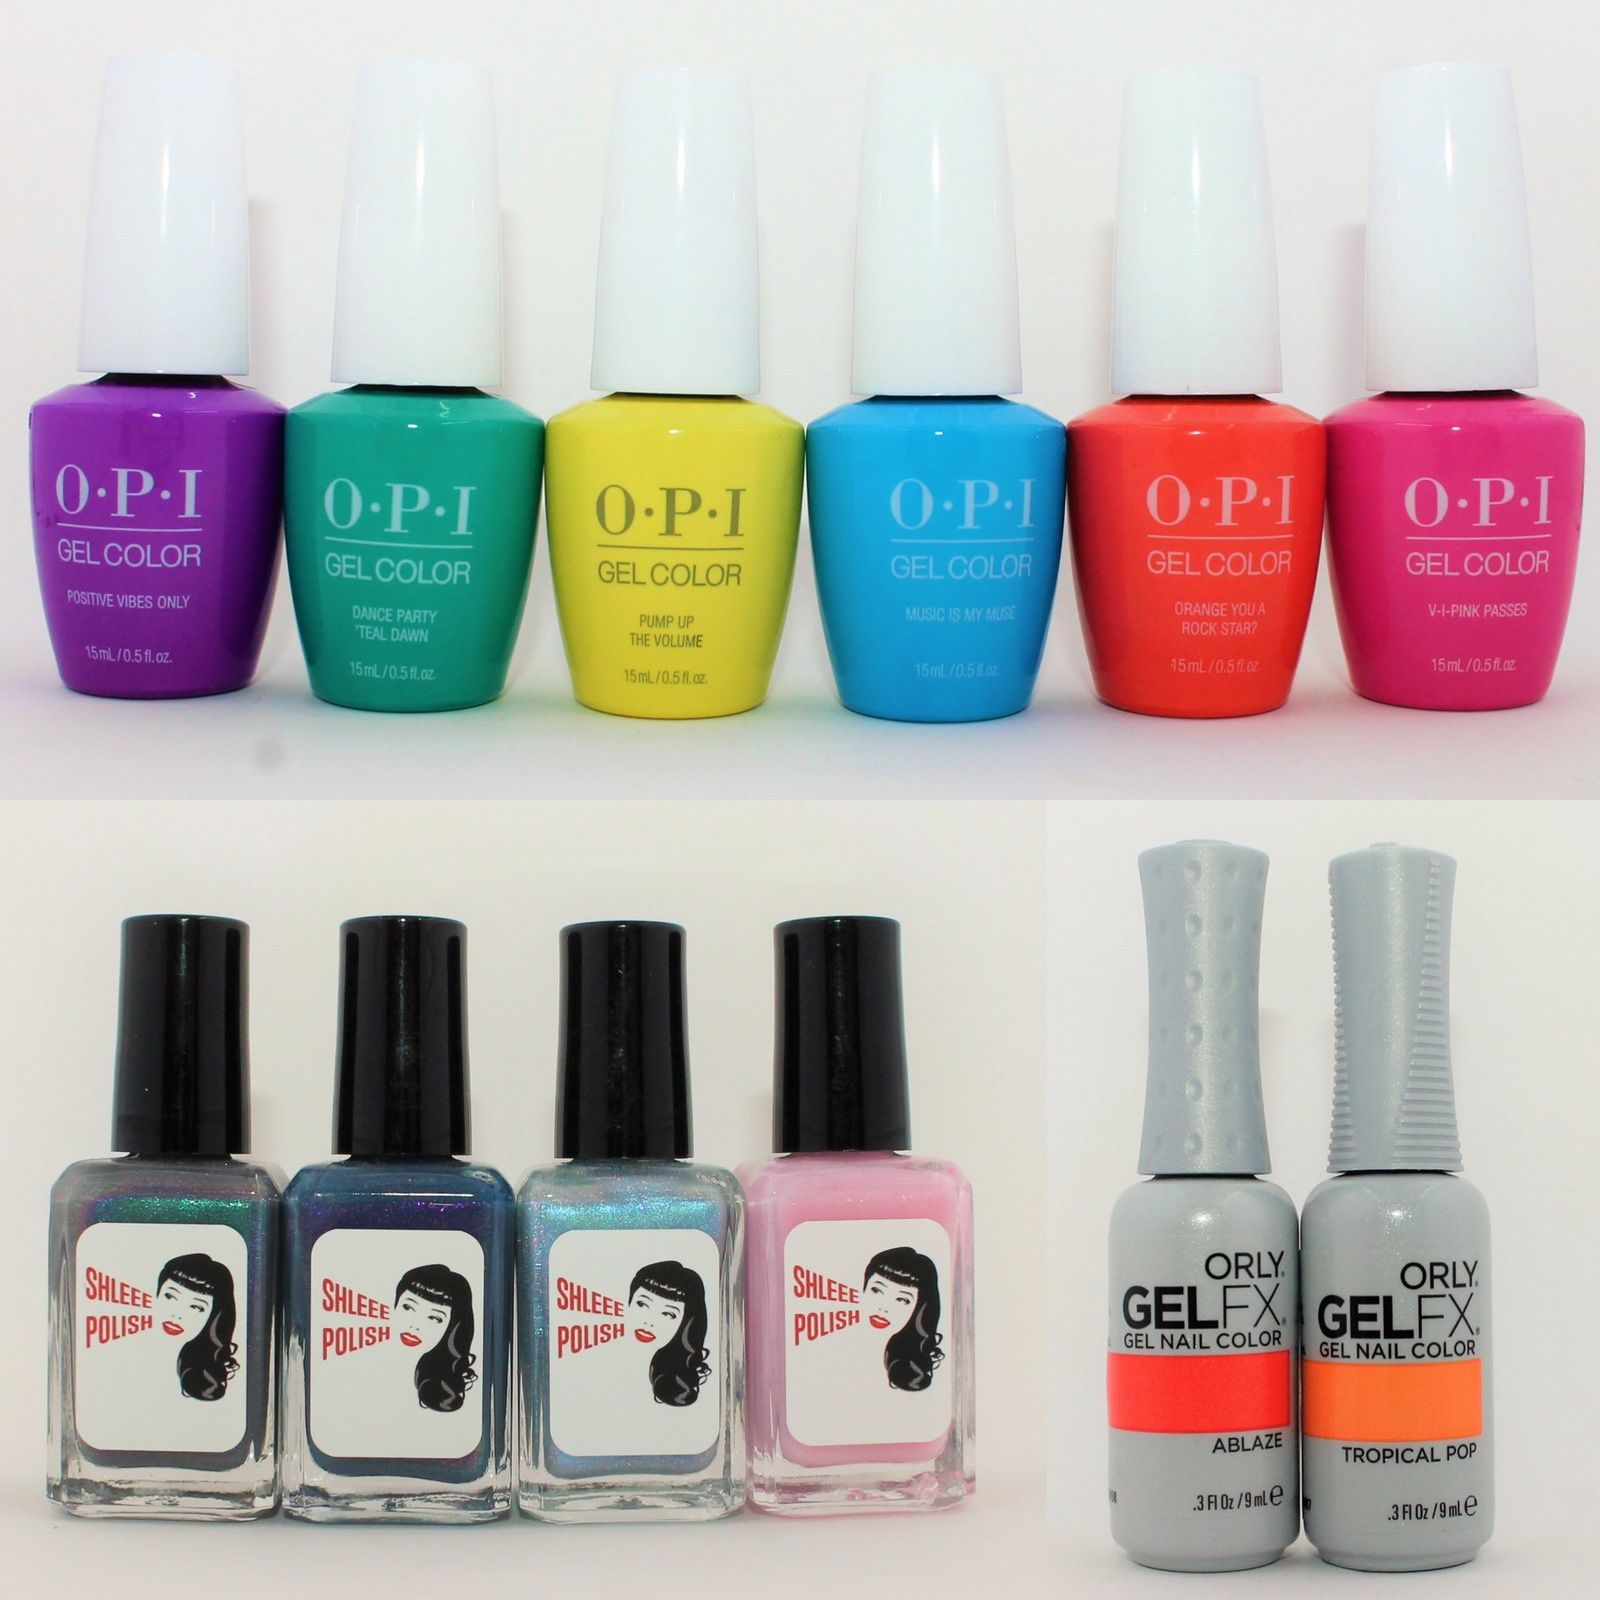 OPI Neon 2019 Collection. Shleee Polish Many Faces, Omen, Pools of Magics & Delicate. Orly GelFX Ablaze & Tropical Pop.